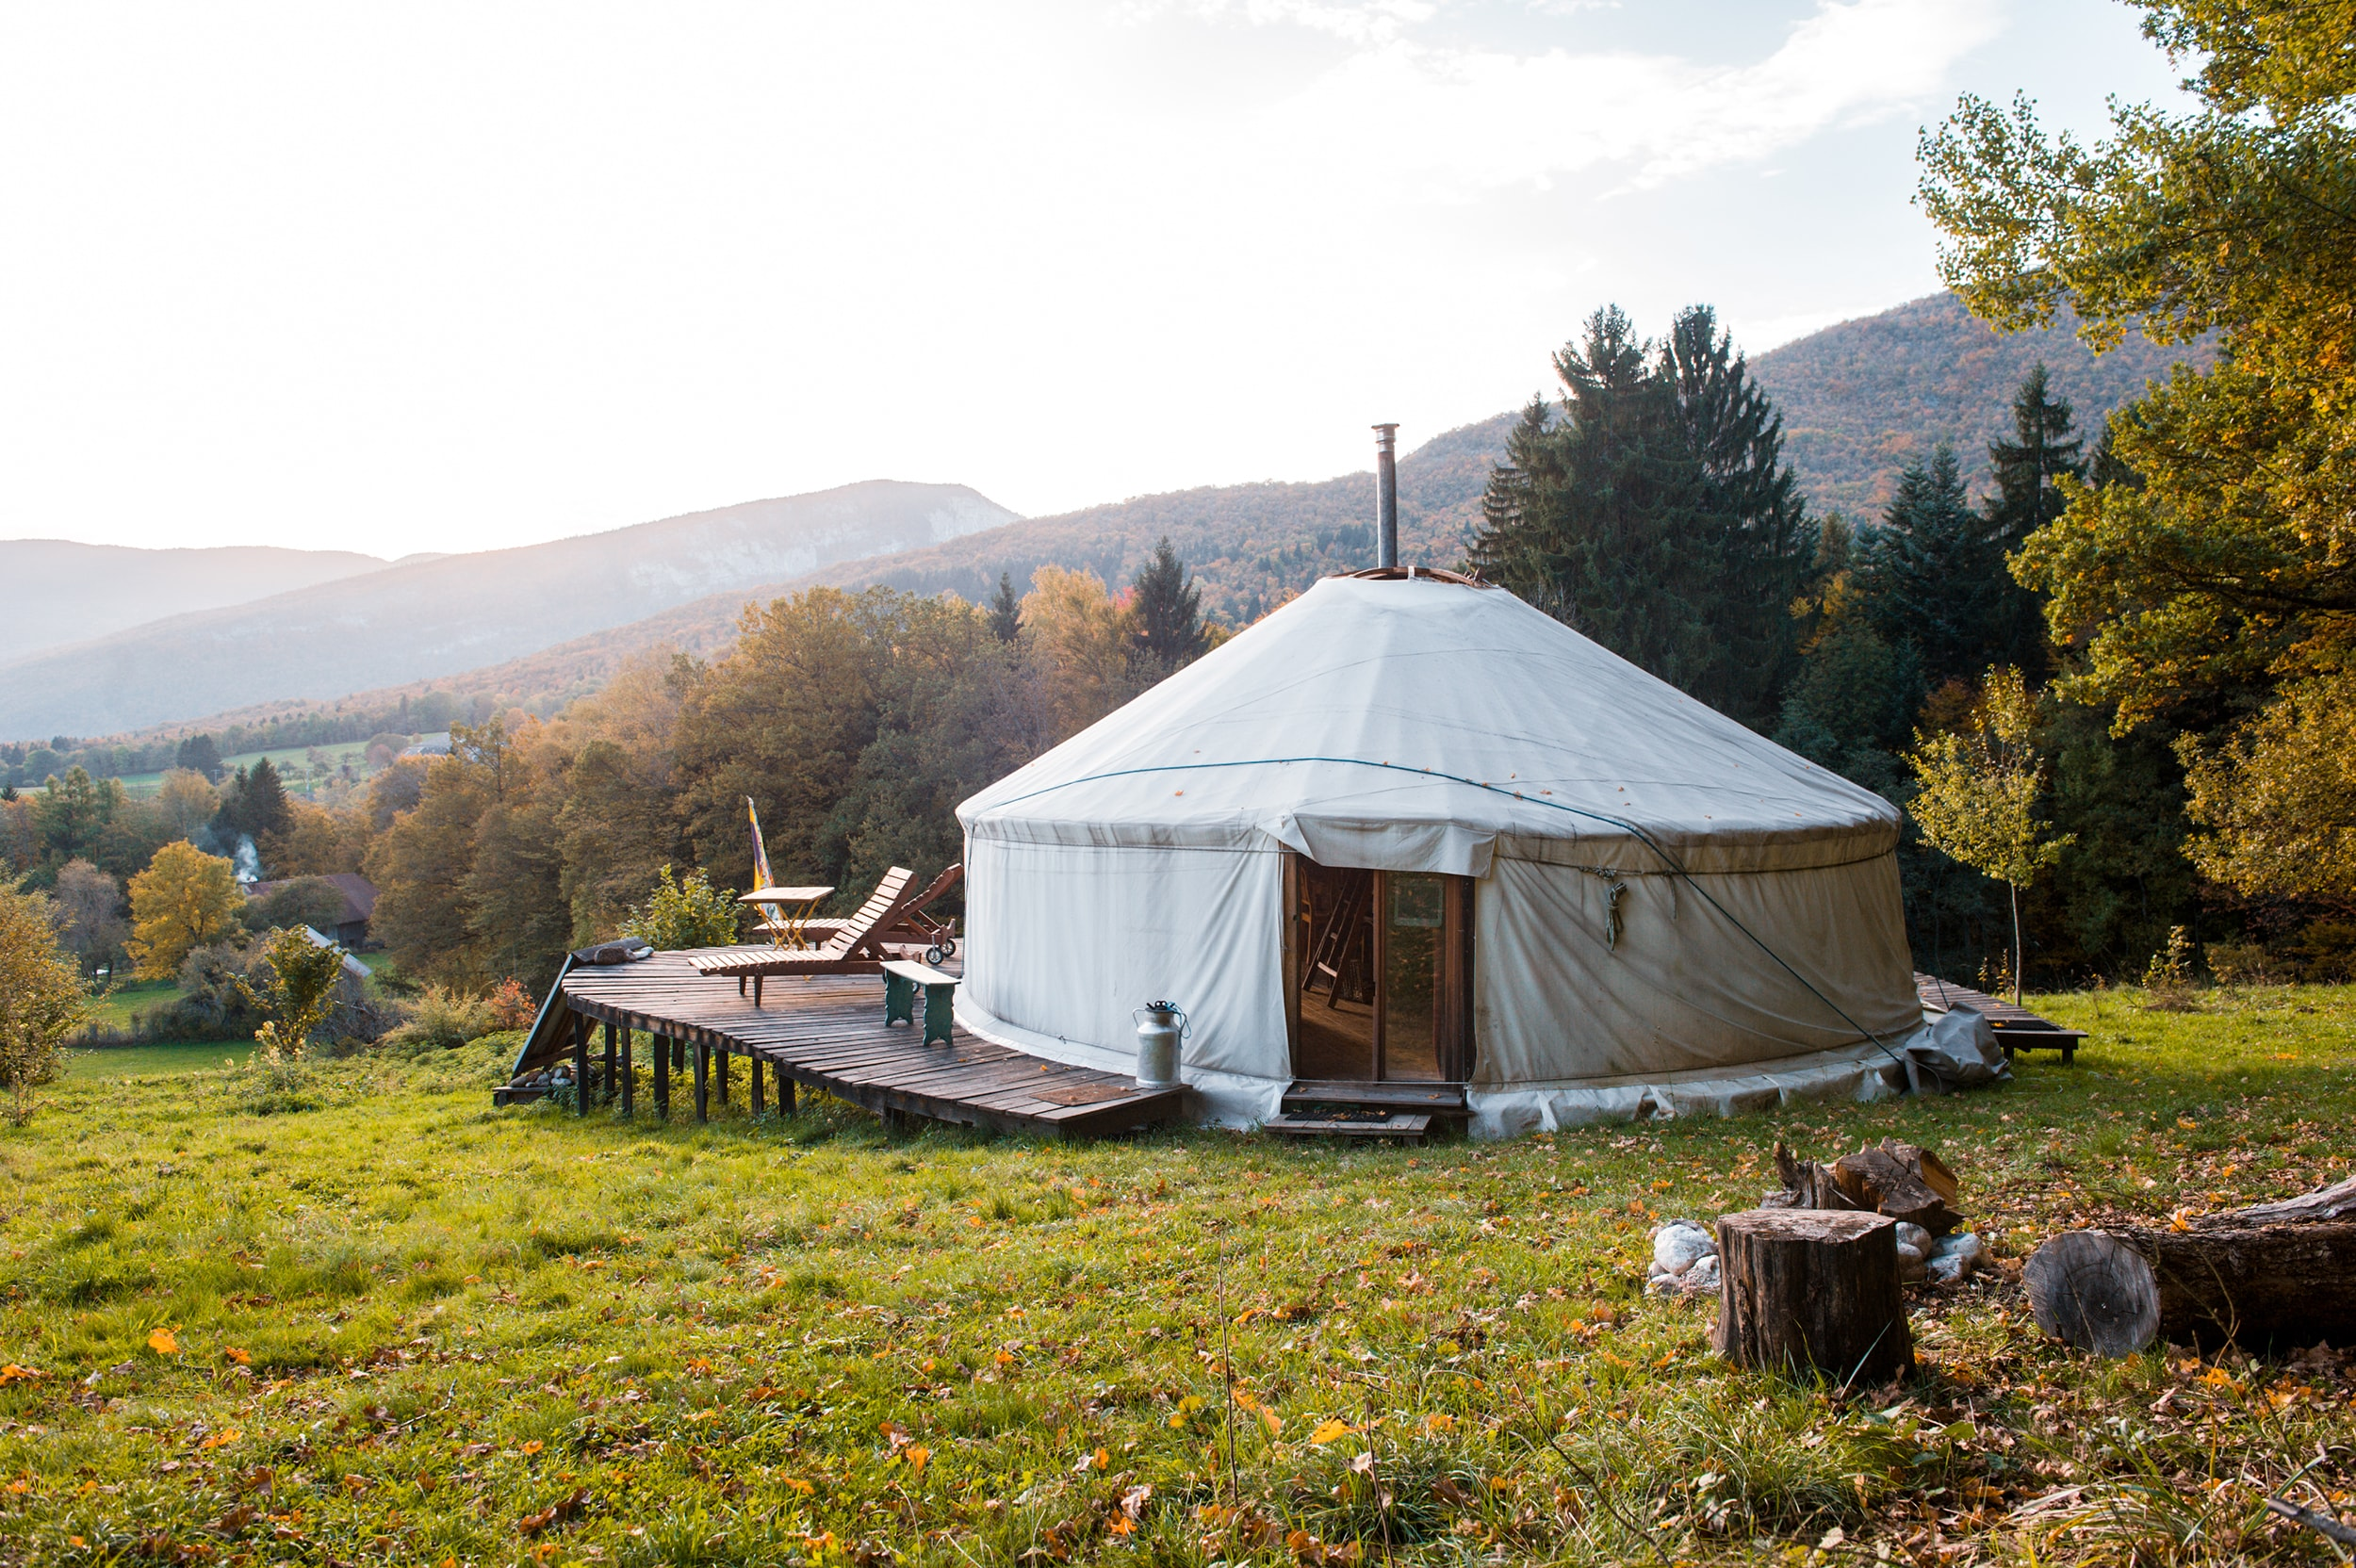 A Quiet Yurt in Savoie-Bauges, Bellecombe-en-Bauges, Rhone-Alpes, France